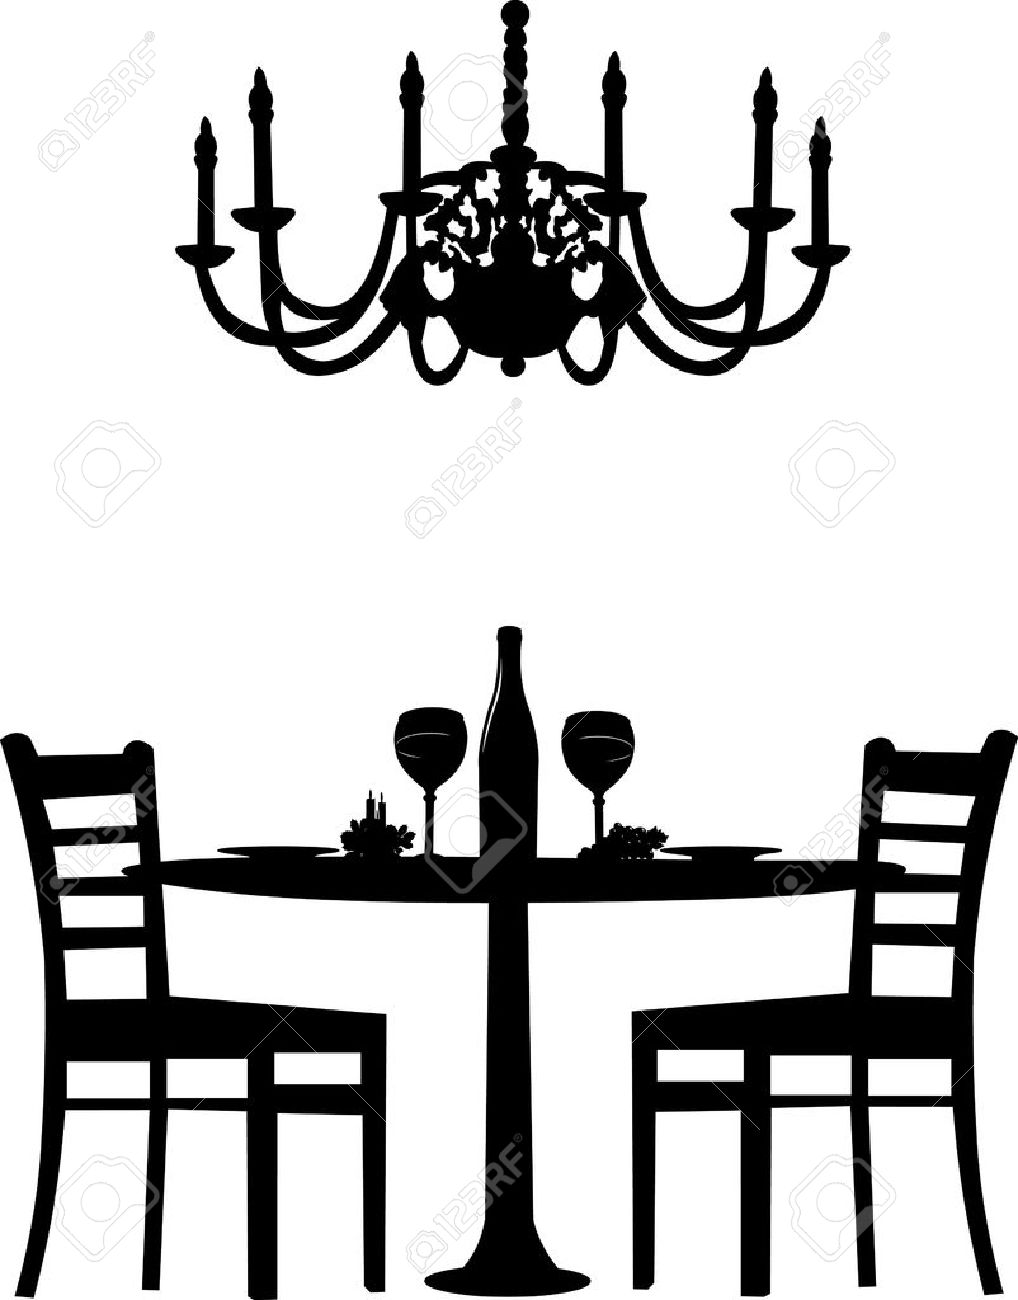 products by ashley piece furniture design signature chairs table for set cottage two side round dining tone and